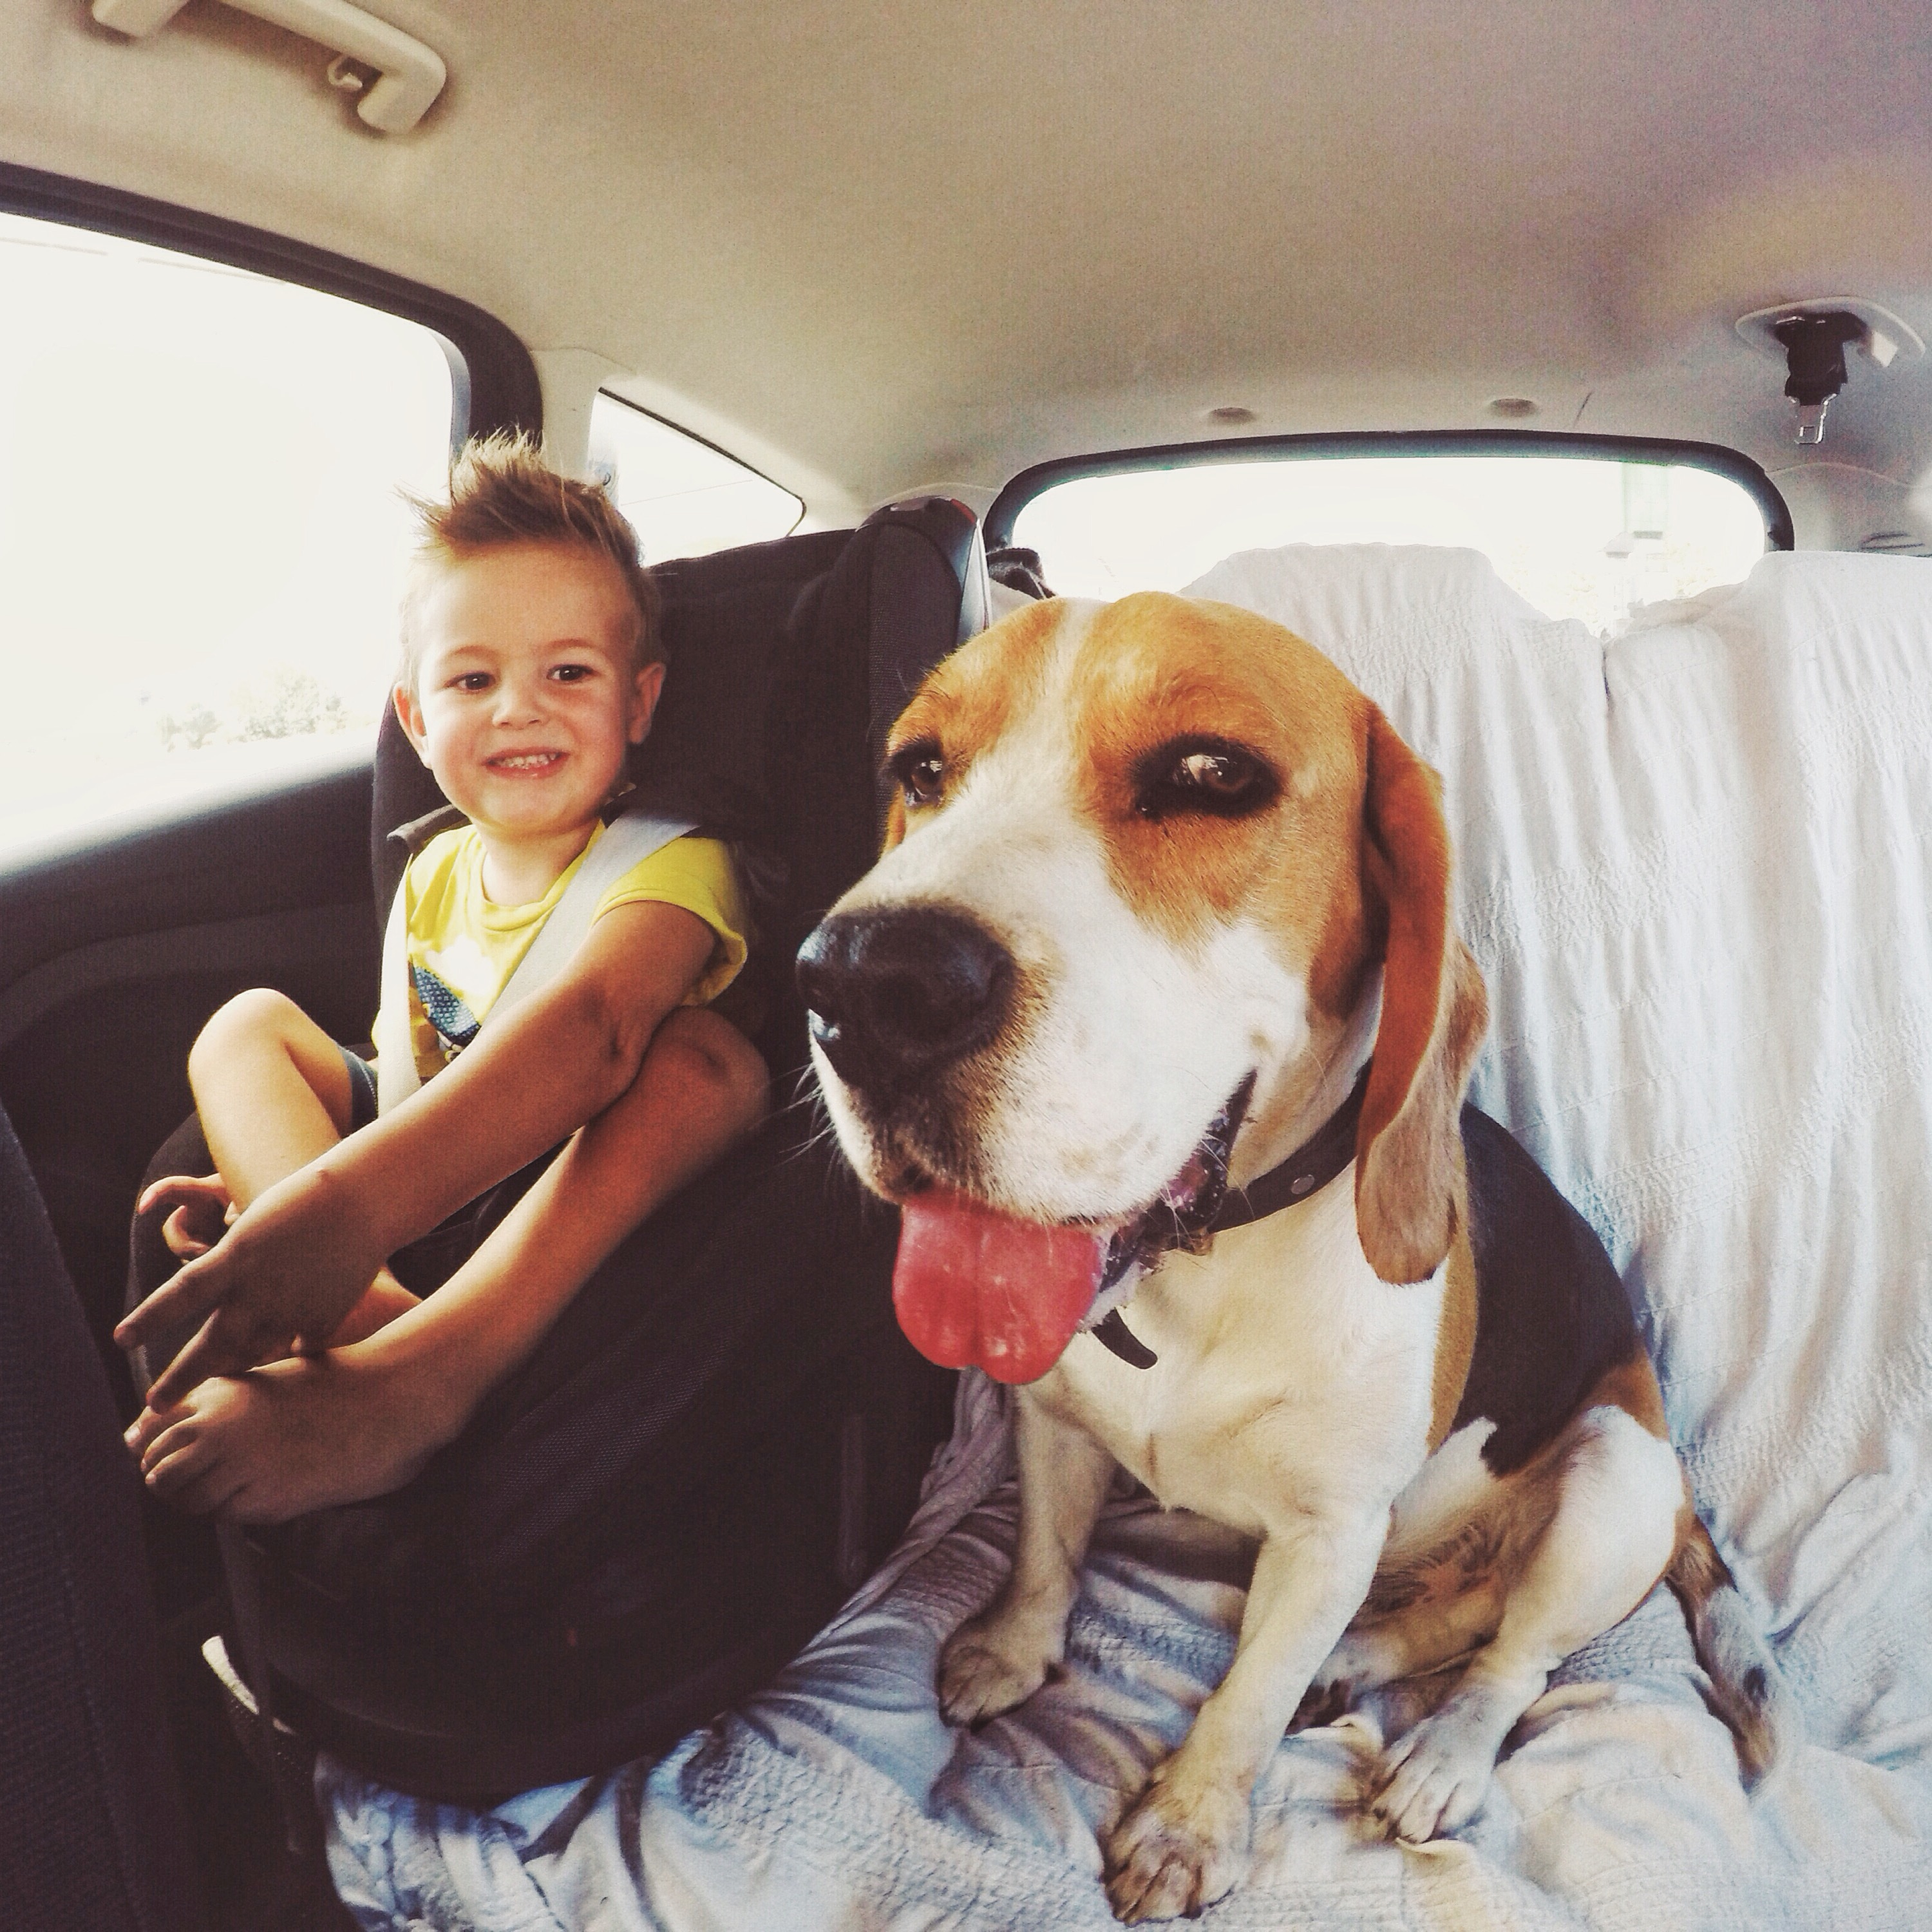 boy smiling with dog in the backseat